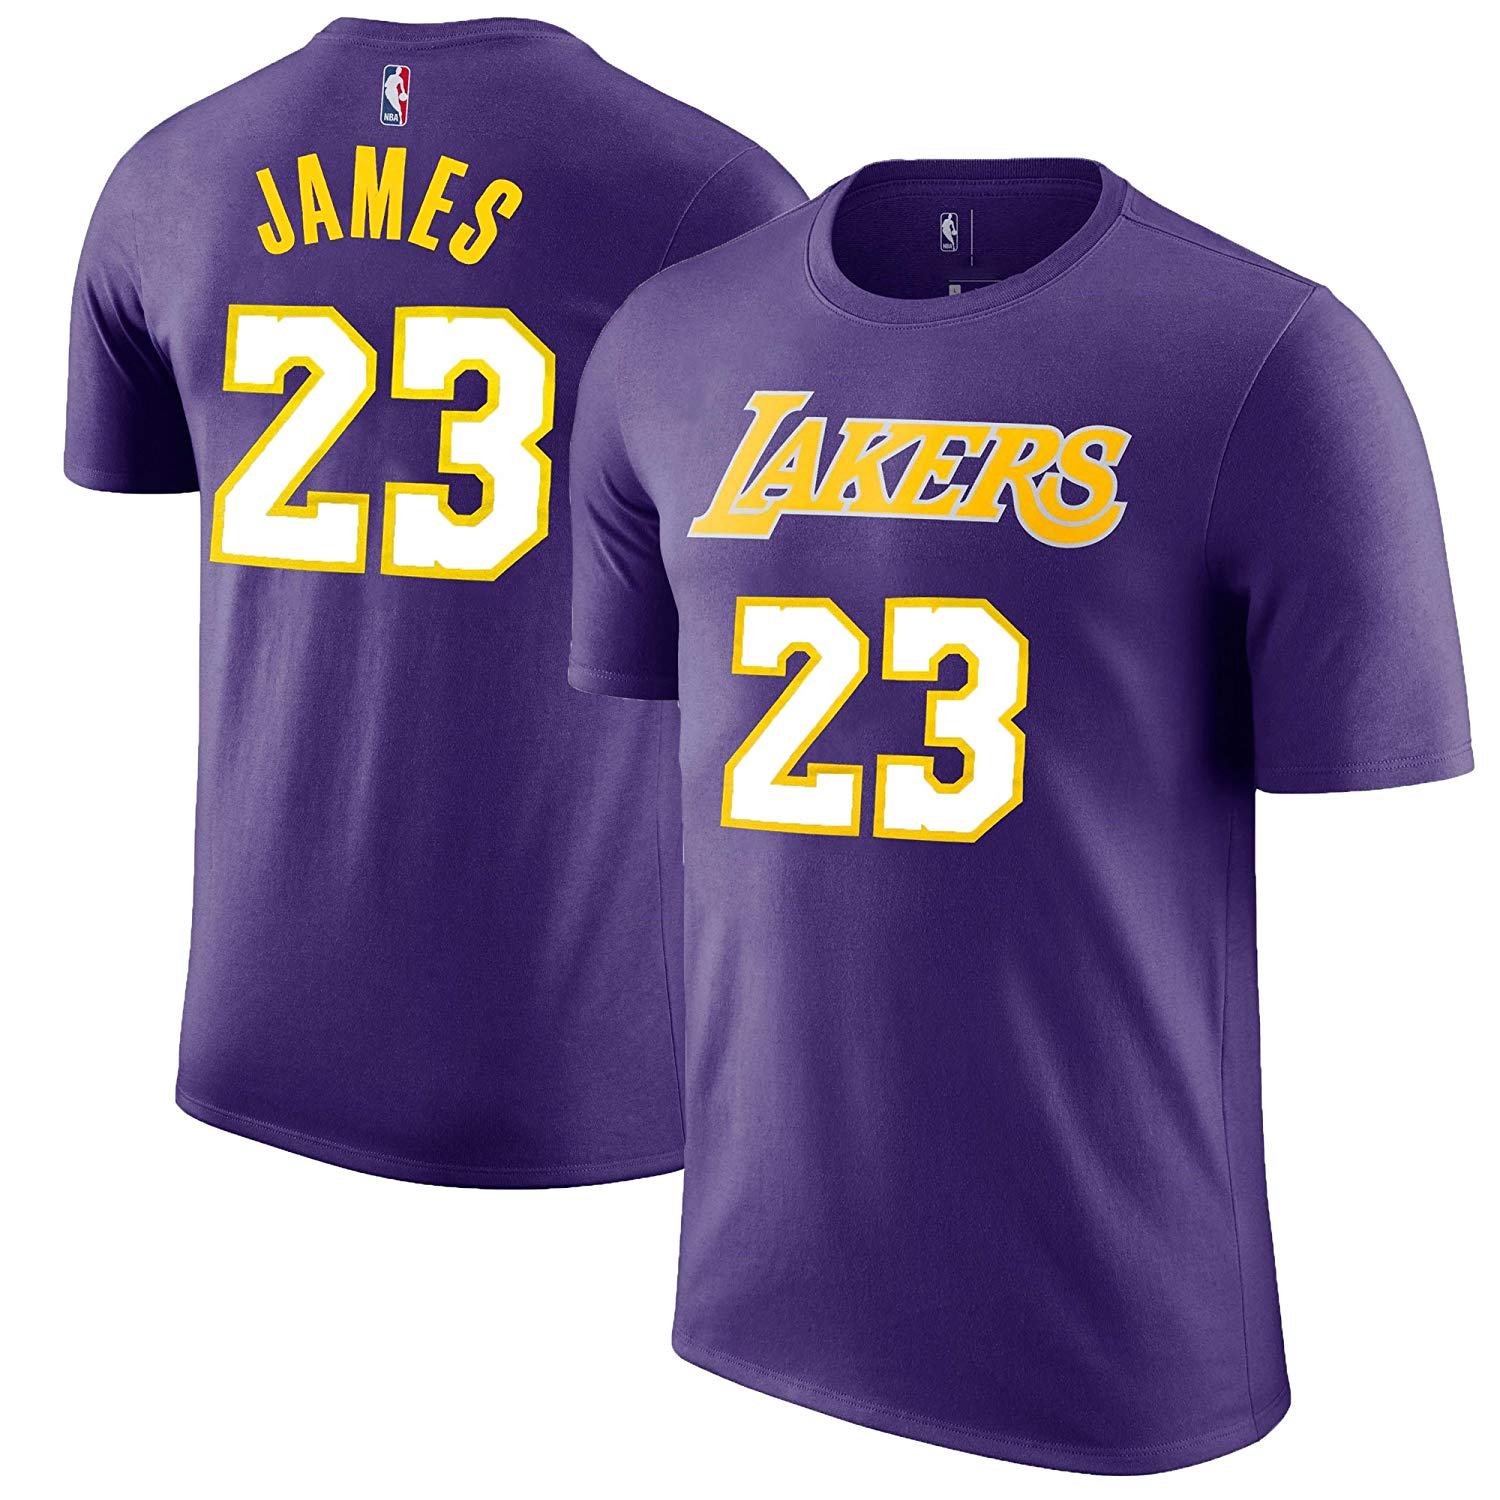 721836e12 Details about LeBron James Los Angeles Lakers  23 Purple NBA Youth Name    Number T-shirt